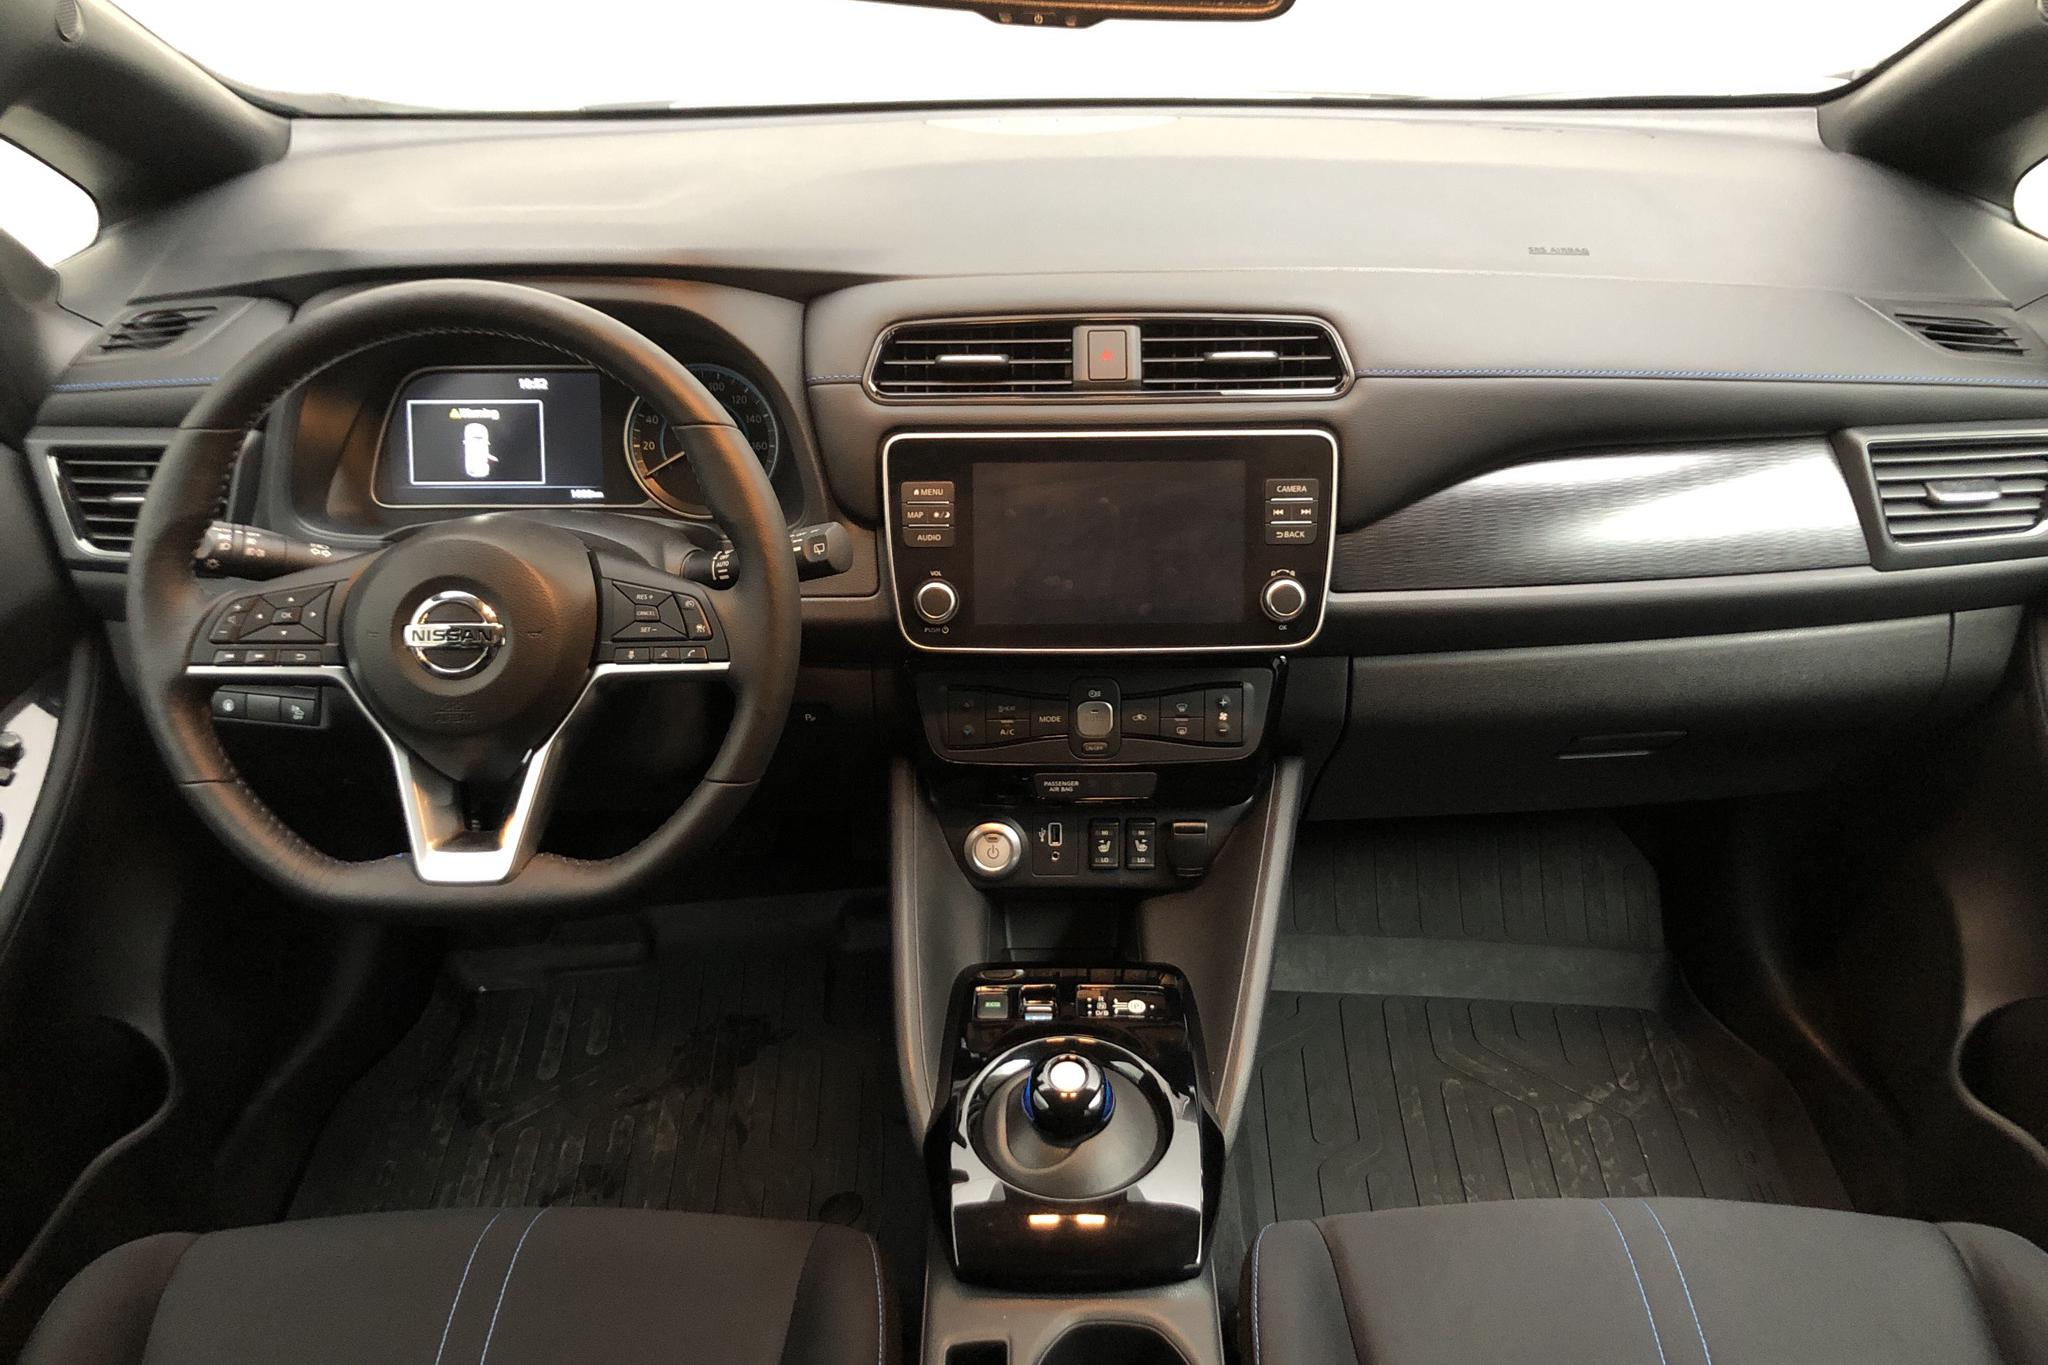 Nissan LEAF 5dr 62 kWh (214hk) - 1 650 km - Automatic - white - 2020